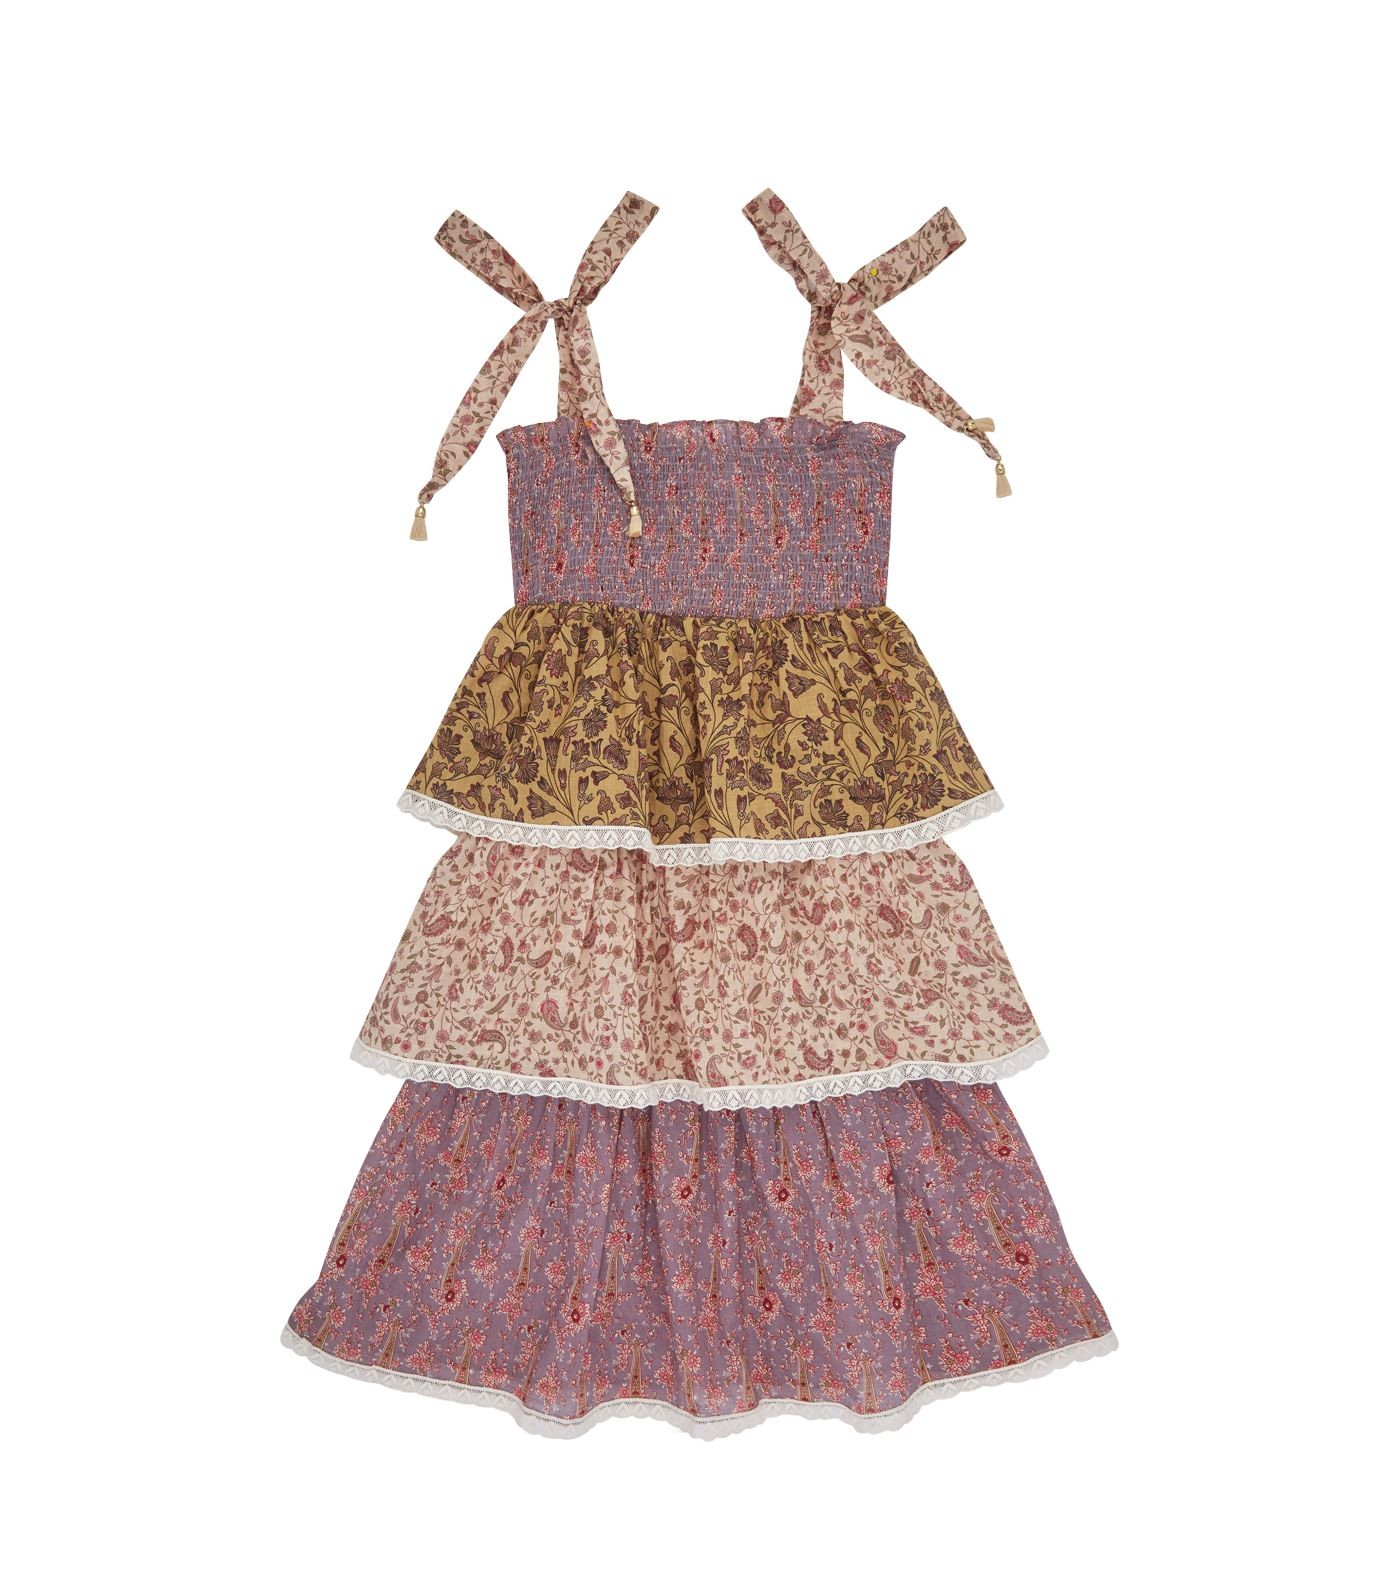 juniper-tiered-dress_000000006164976002